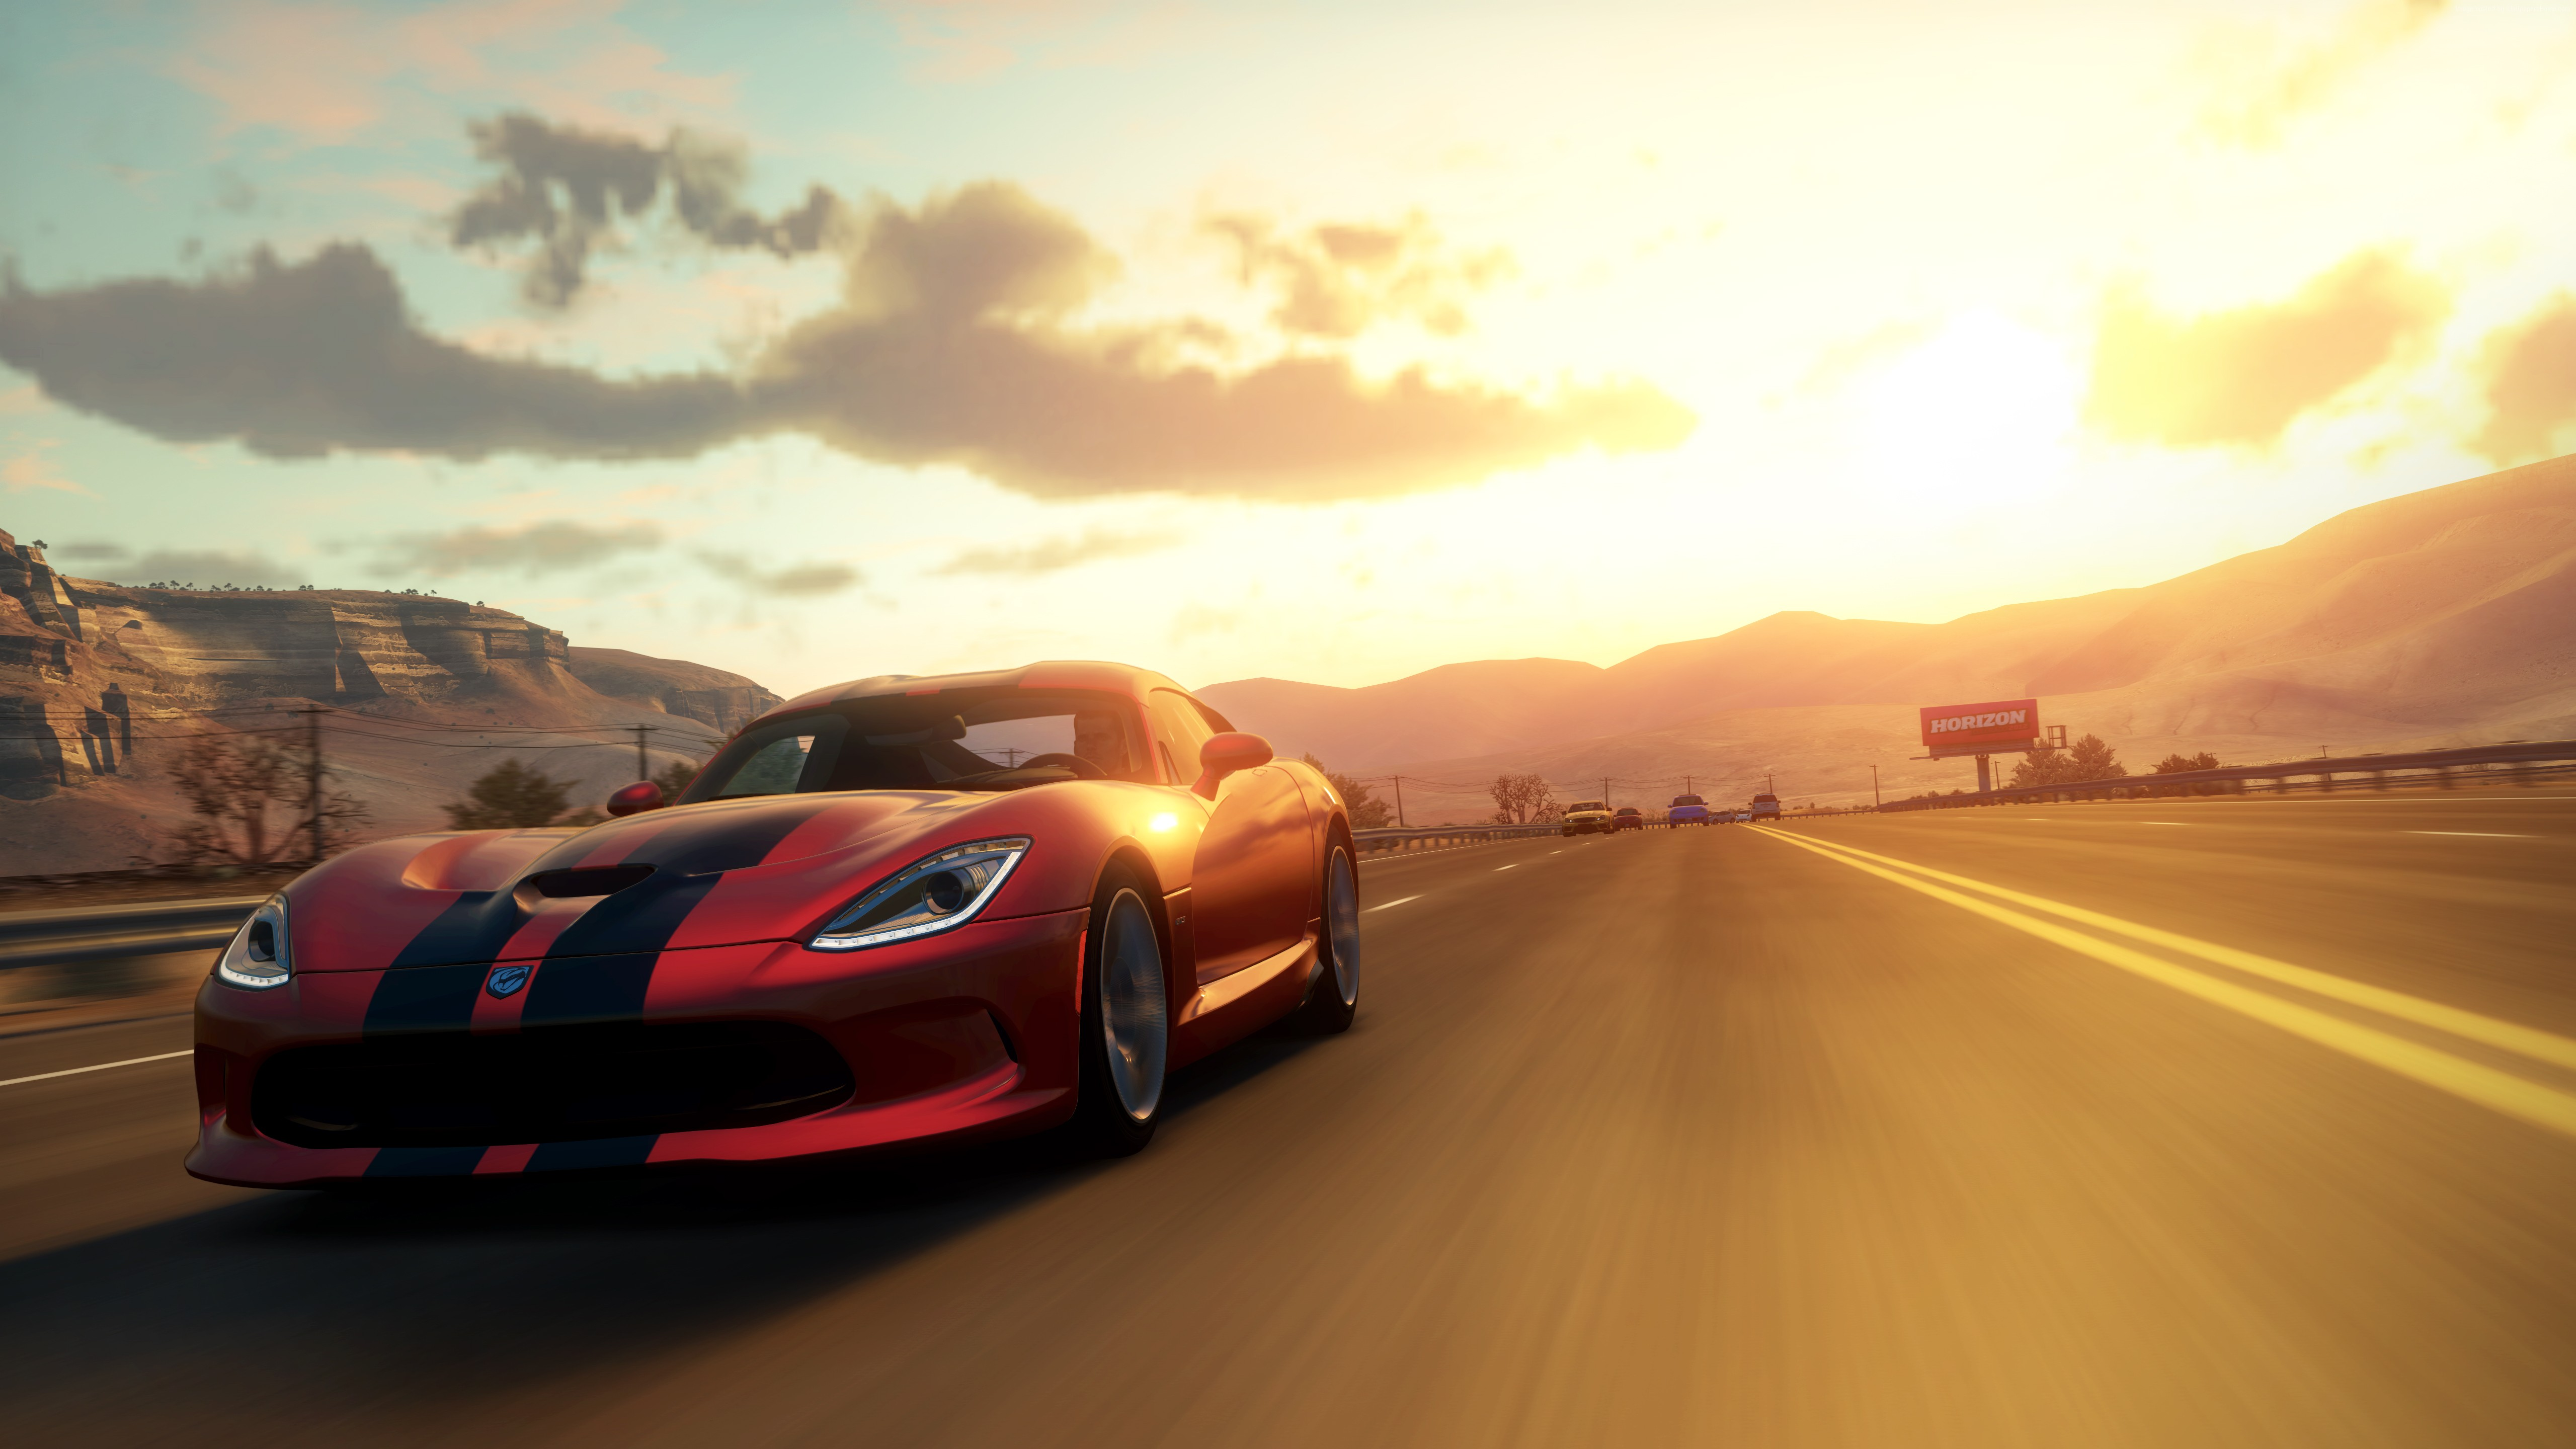 wallpaper forza horizon, 5k, 4k wallpaper, game, car, red, sunset